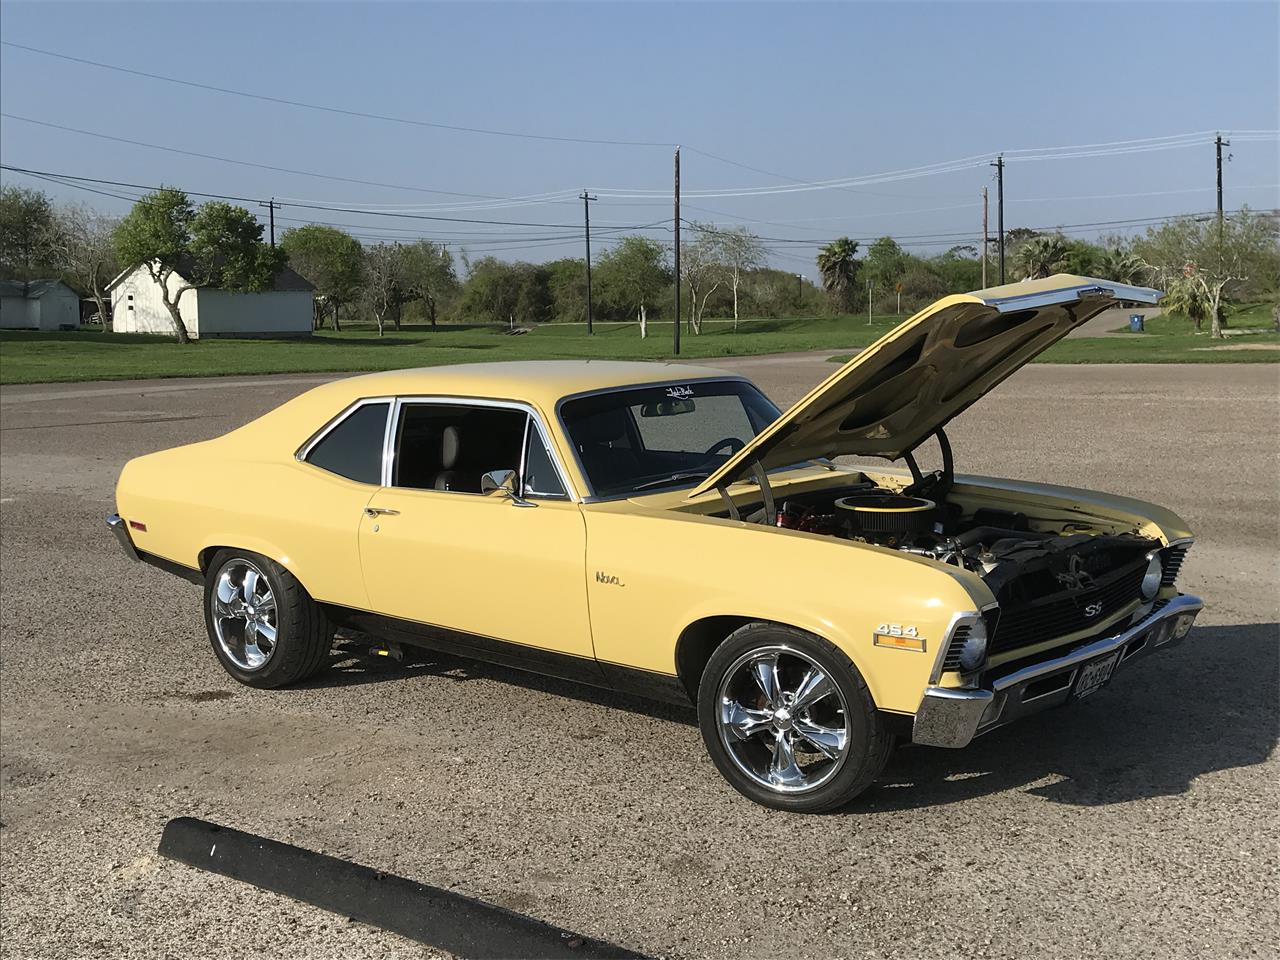 For Sale: 1970 Chevrolet Nova SS in Aransas Pass, Texas